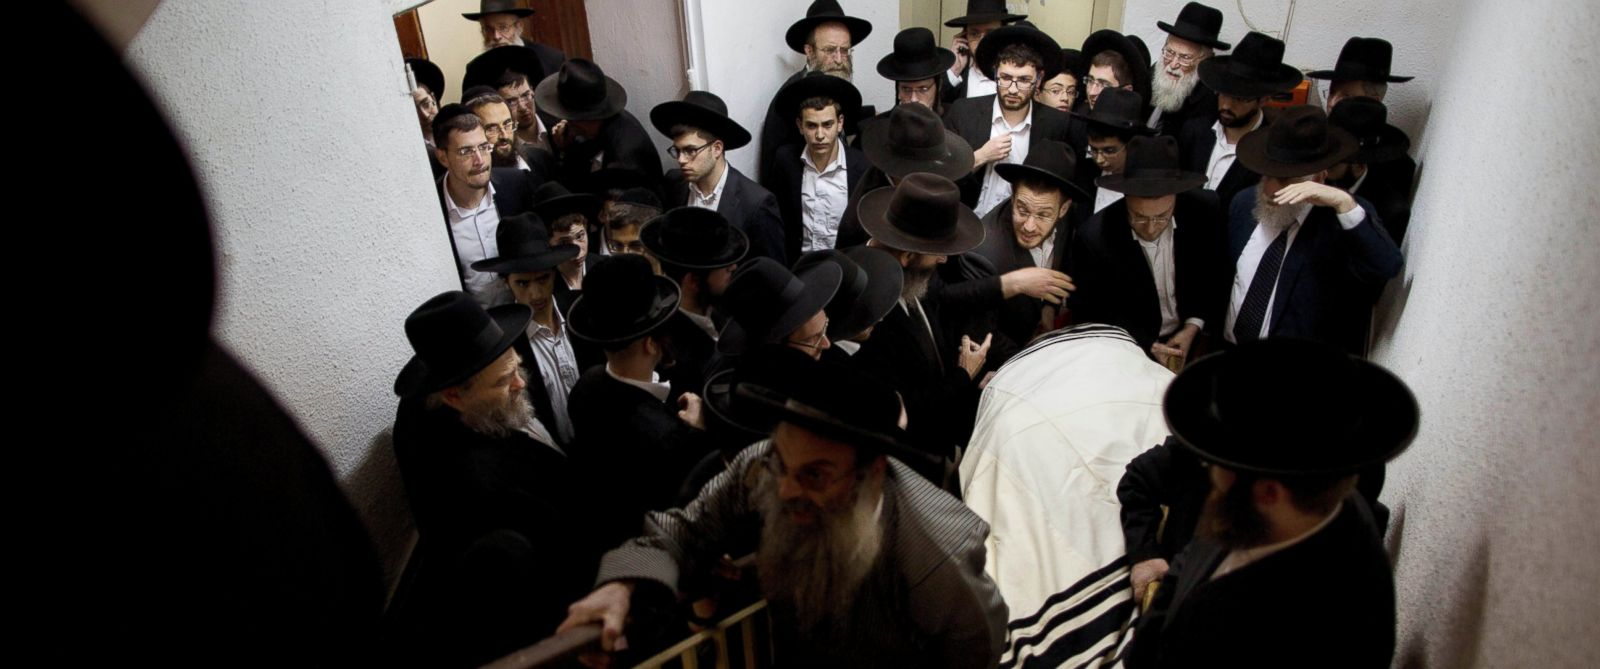 PHOTO: Ultra-Orthodox Jews carry the body of Mosheh Twersky during his funeral in Jerusalem, Nov. 18, 2014.